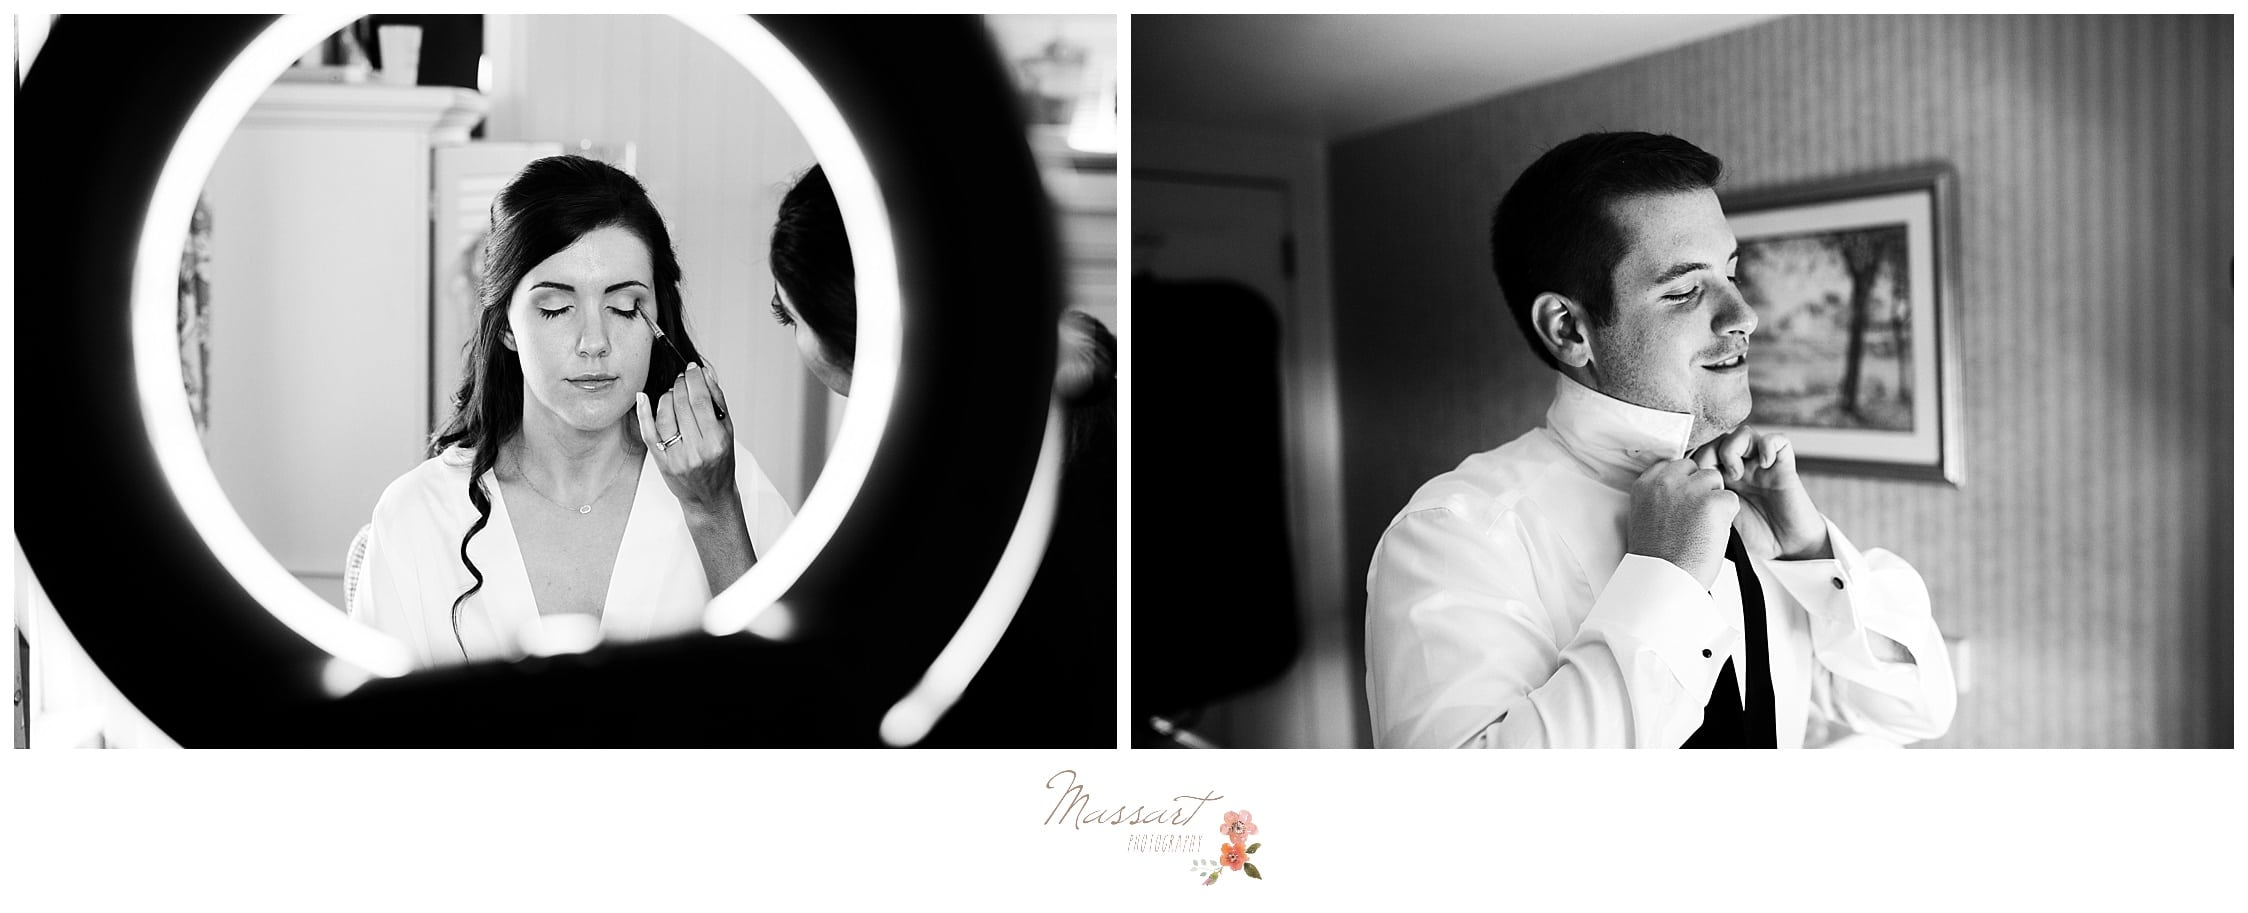 The bride and groom both get ready for their wedding day photographed by Massart Photography Rhode Island